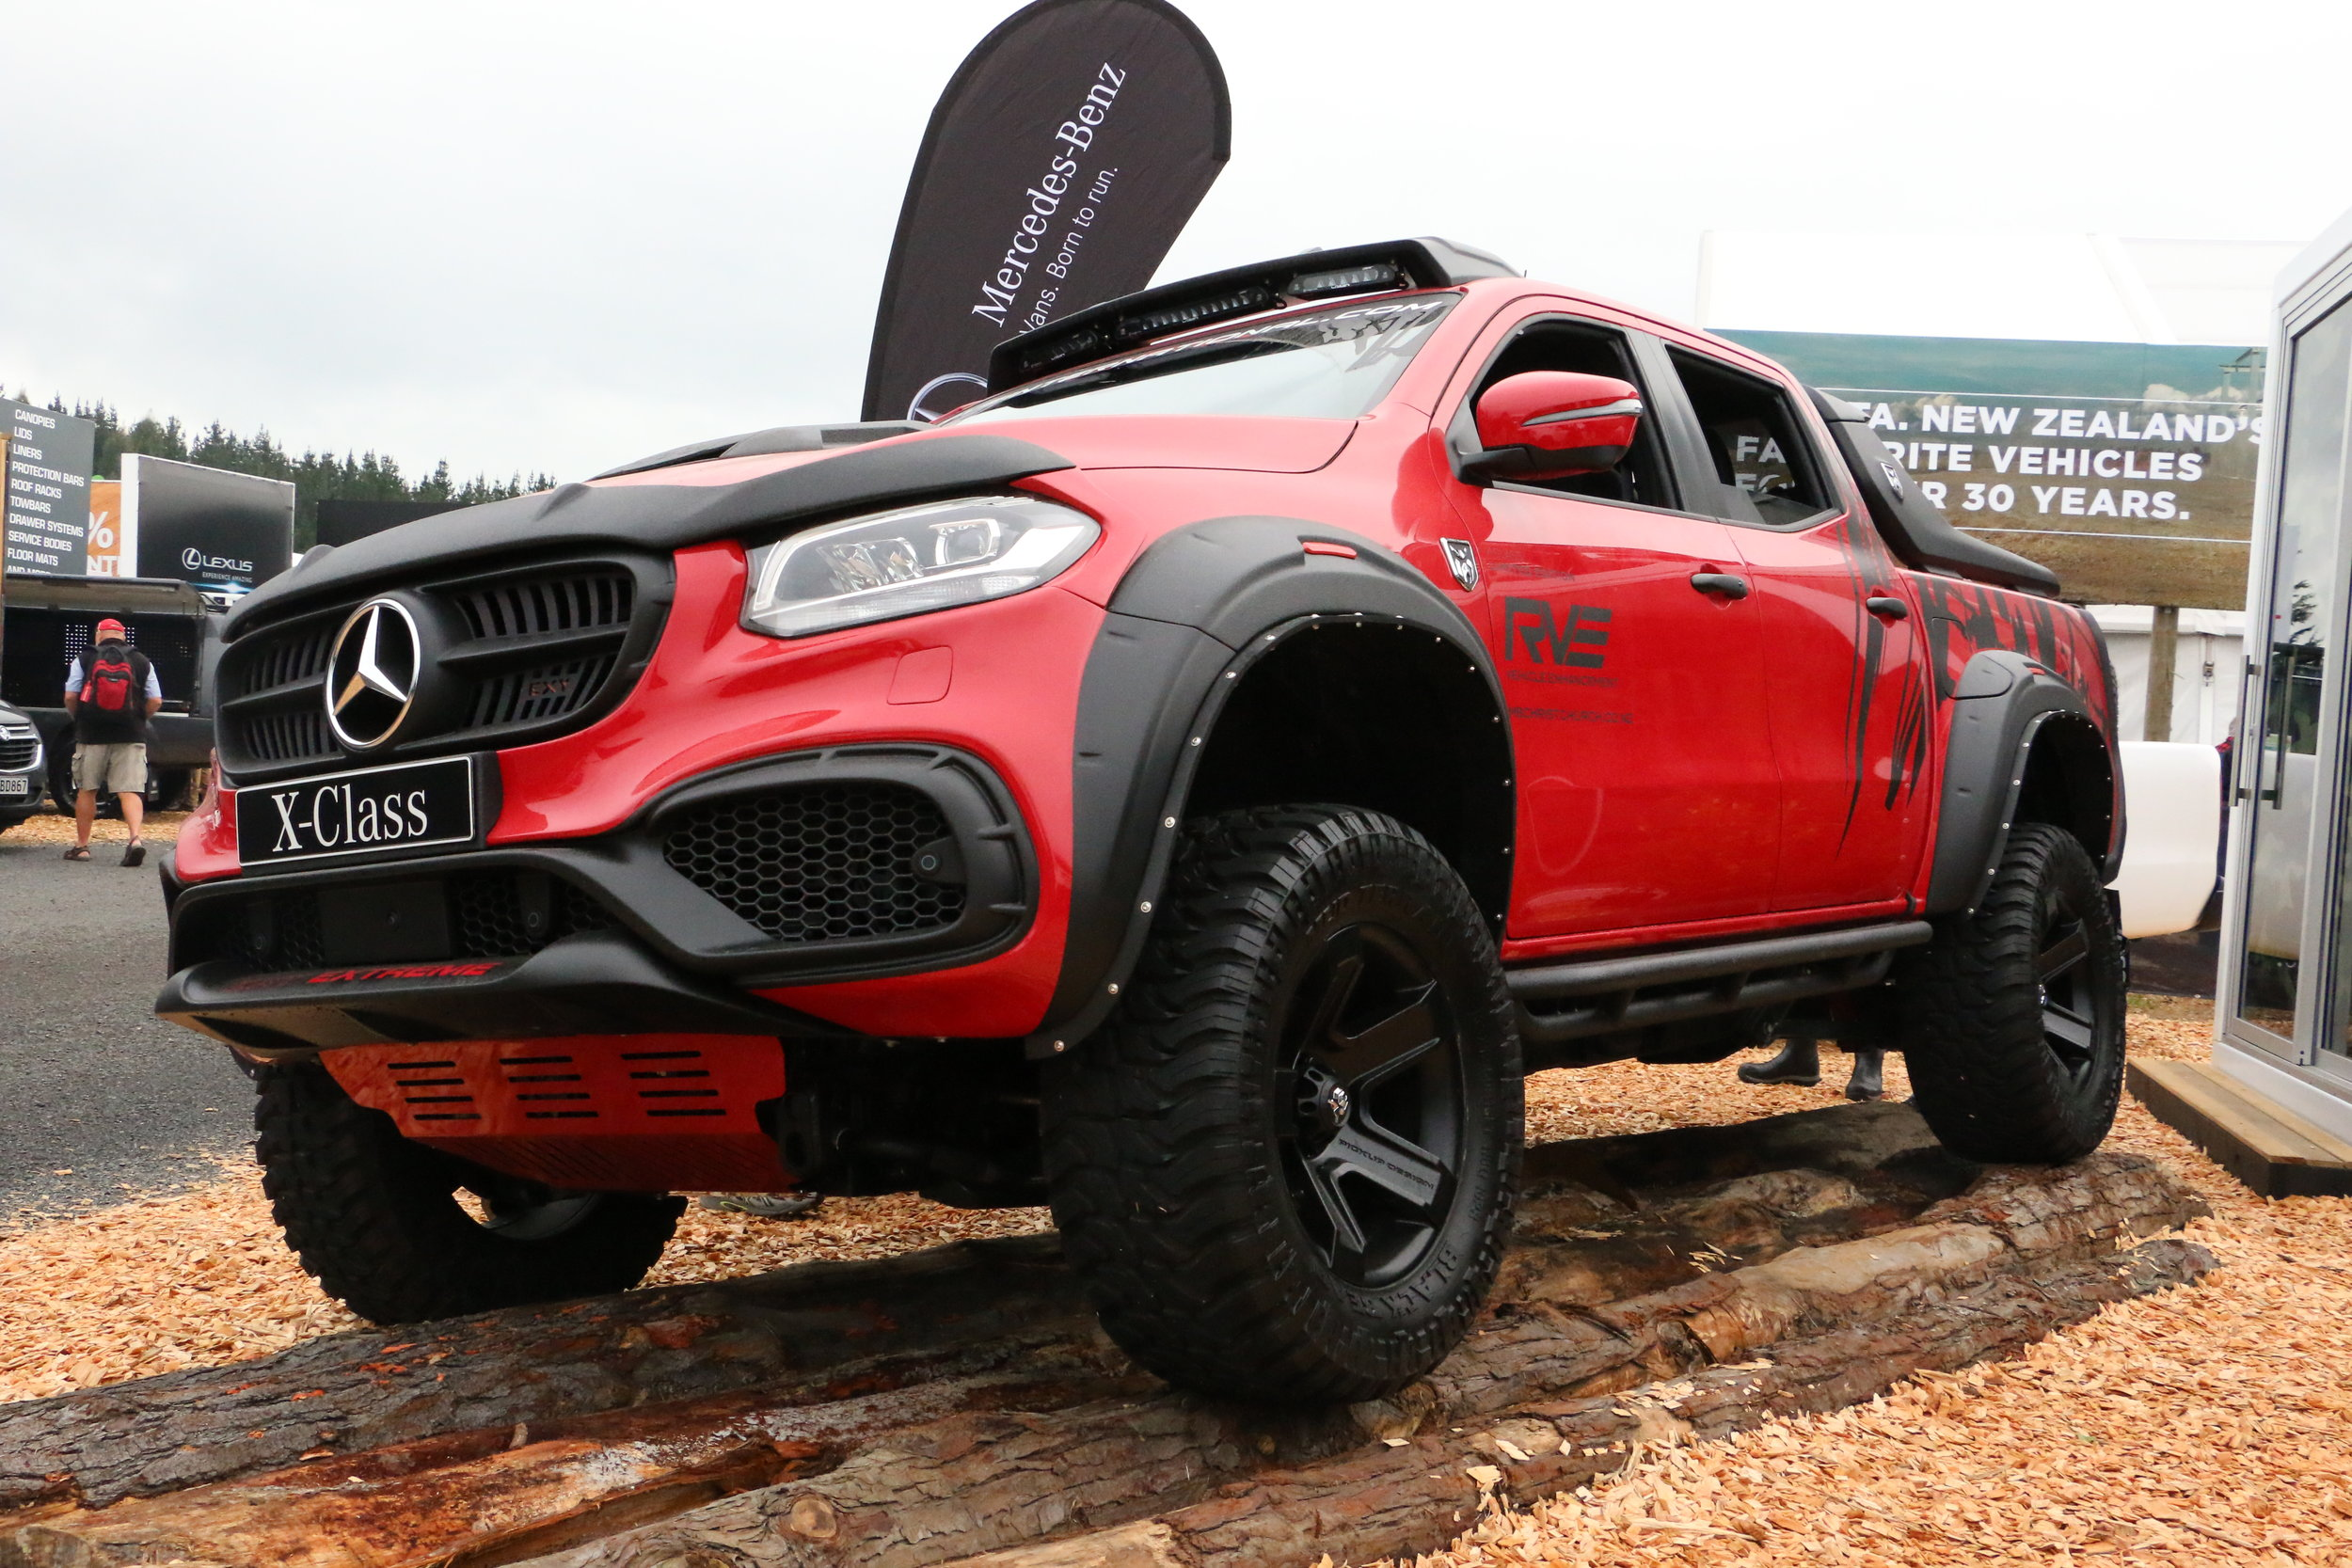 Mercedes Benz X-Class Exy Extreme